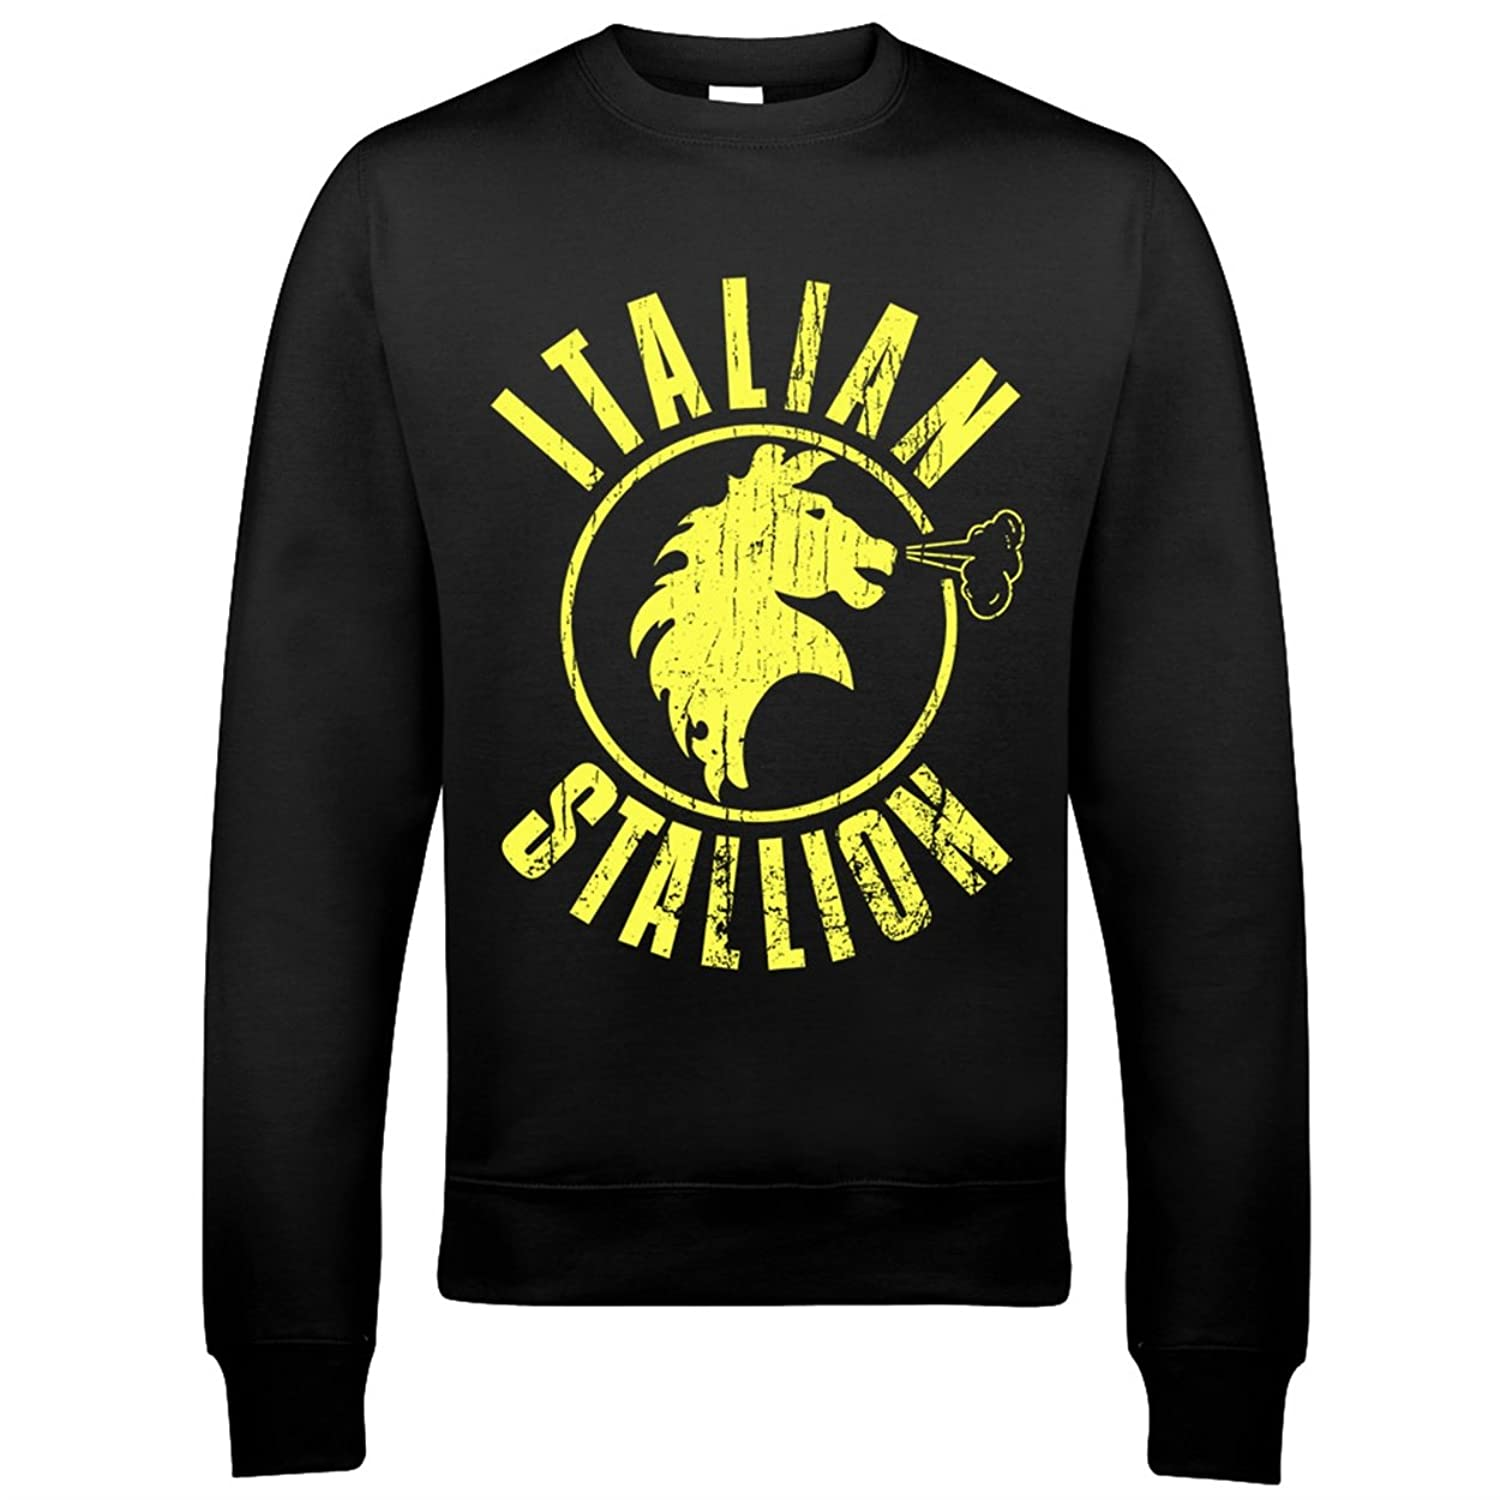 9131 Italian Stallion Mens Sweatshirt Silvester Stalone Boxing Champion Rocky Balboa Mighty Mick's Gym